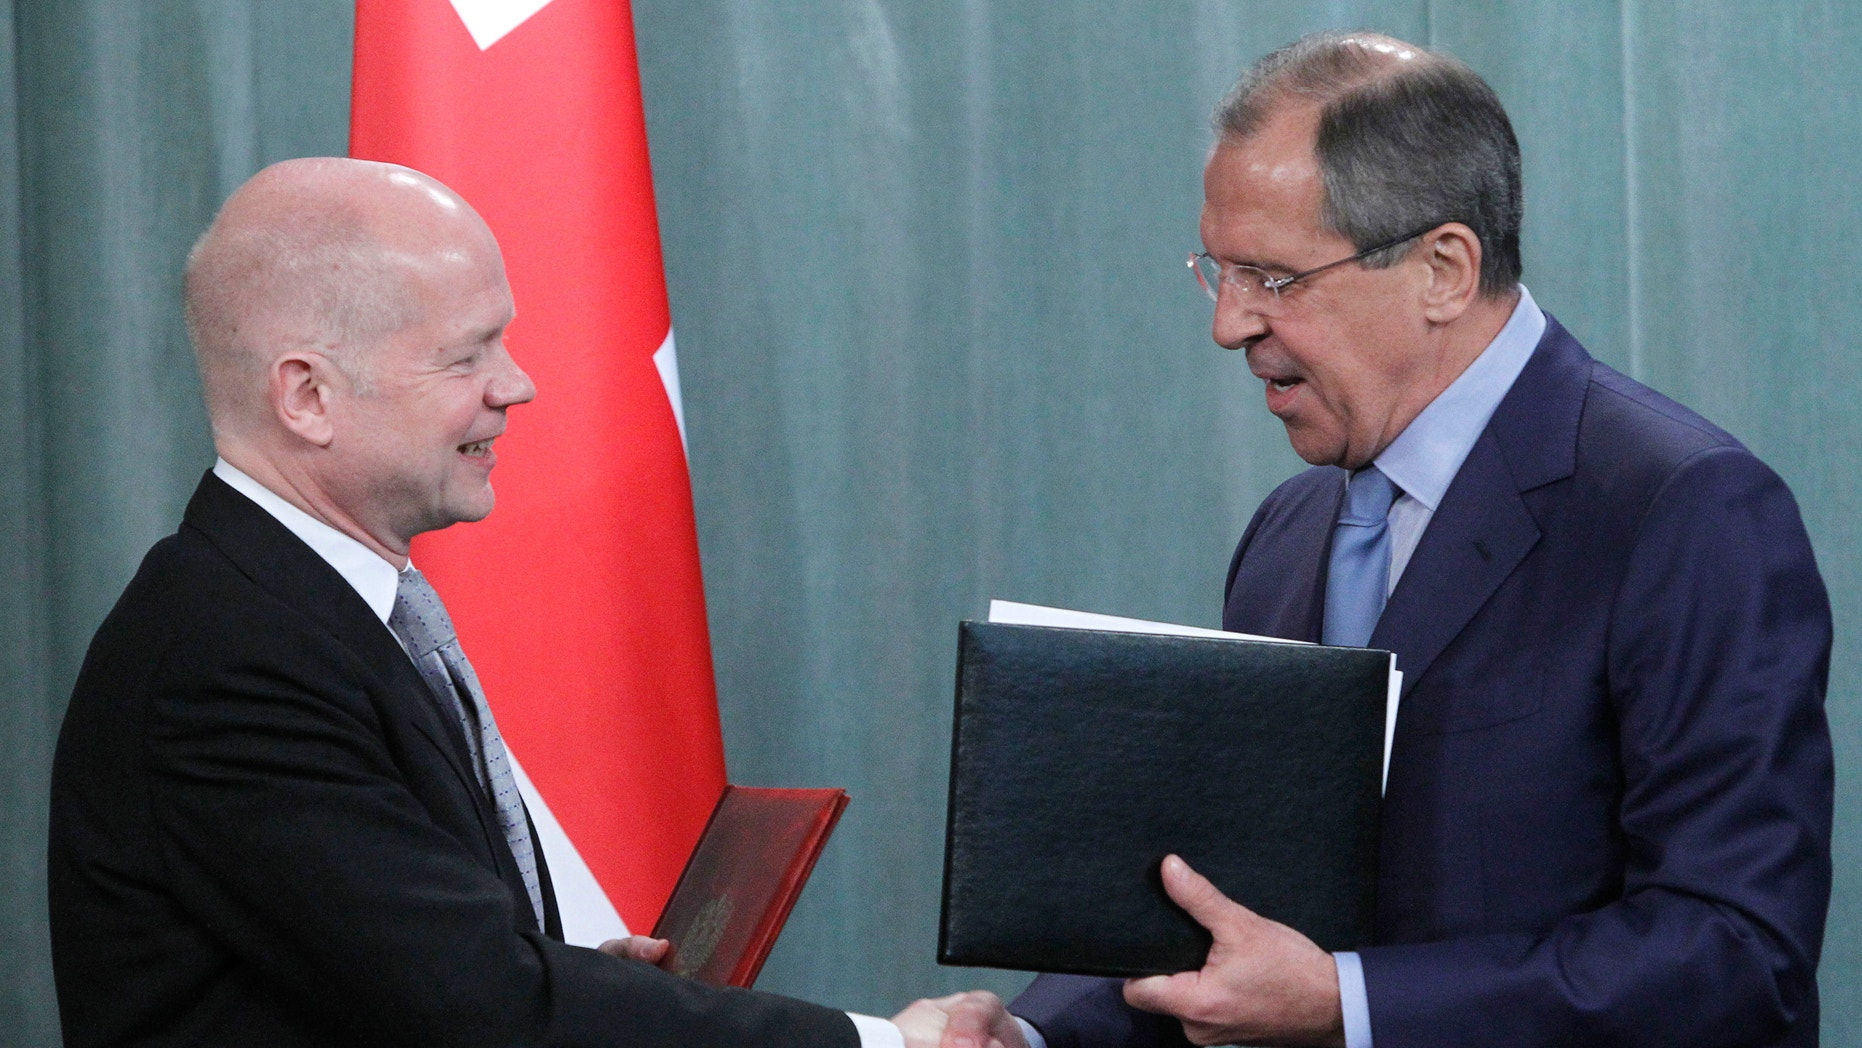 May 27, 2012: Russian Foreign Minister Sergey Lavrov, right, and his British counterpart William Hague shake hands as they exchange documents after their meeting in Moscow, Russia.